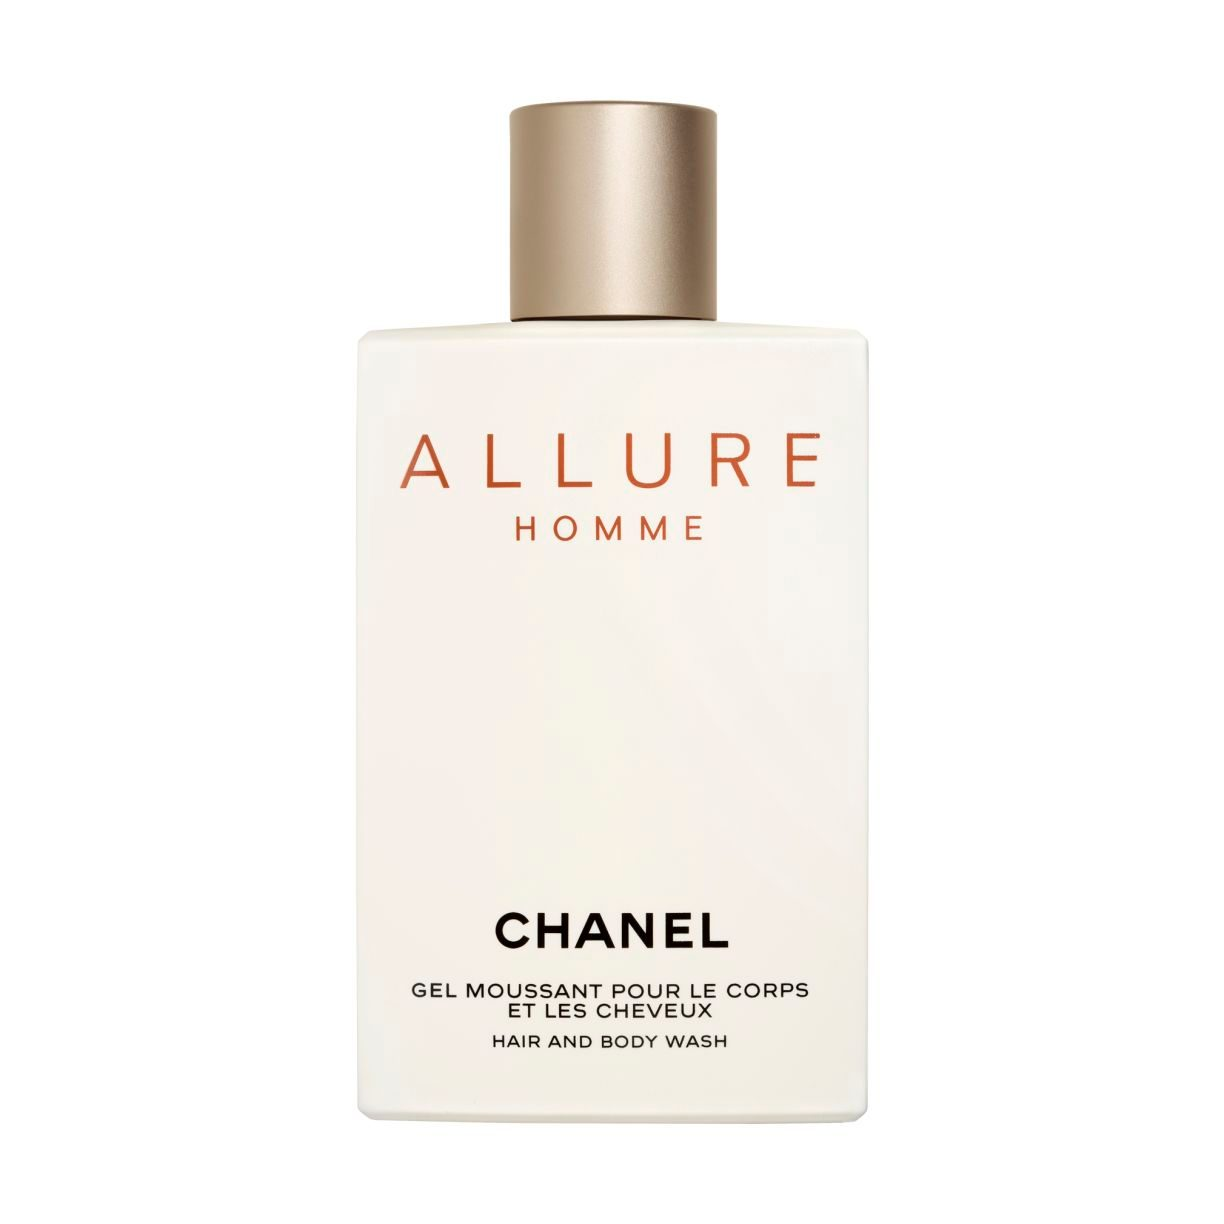 ALLURE HOMME HAIR AND BODY WASH